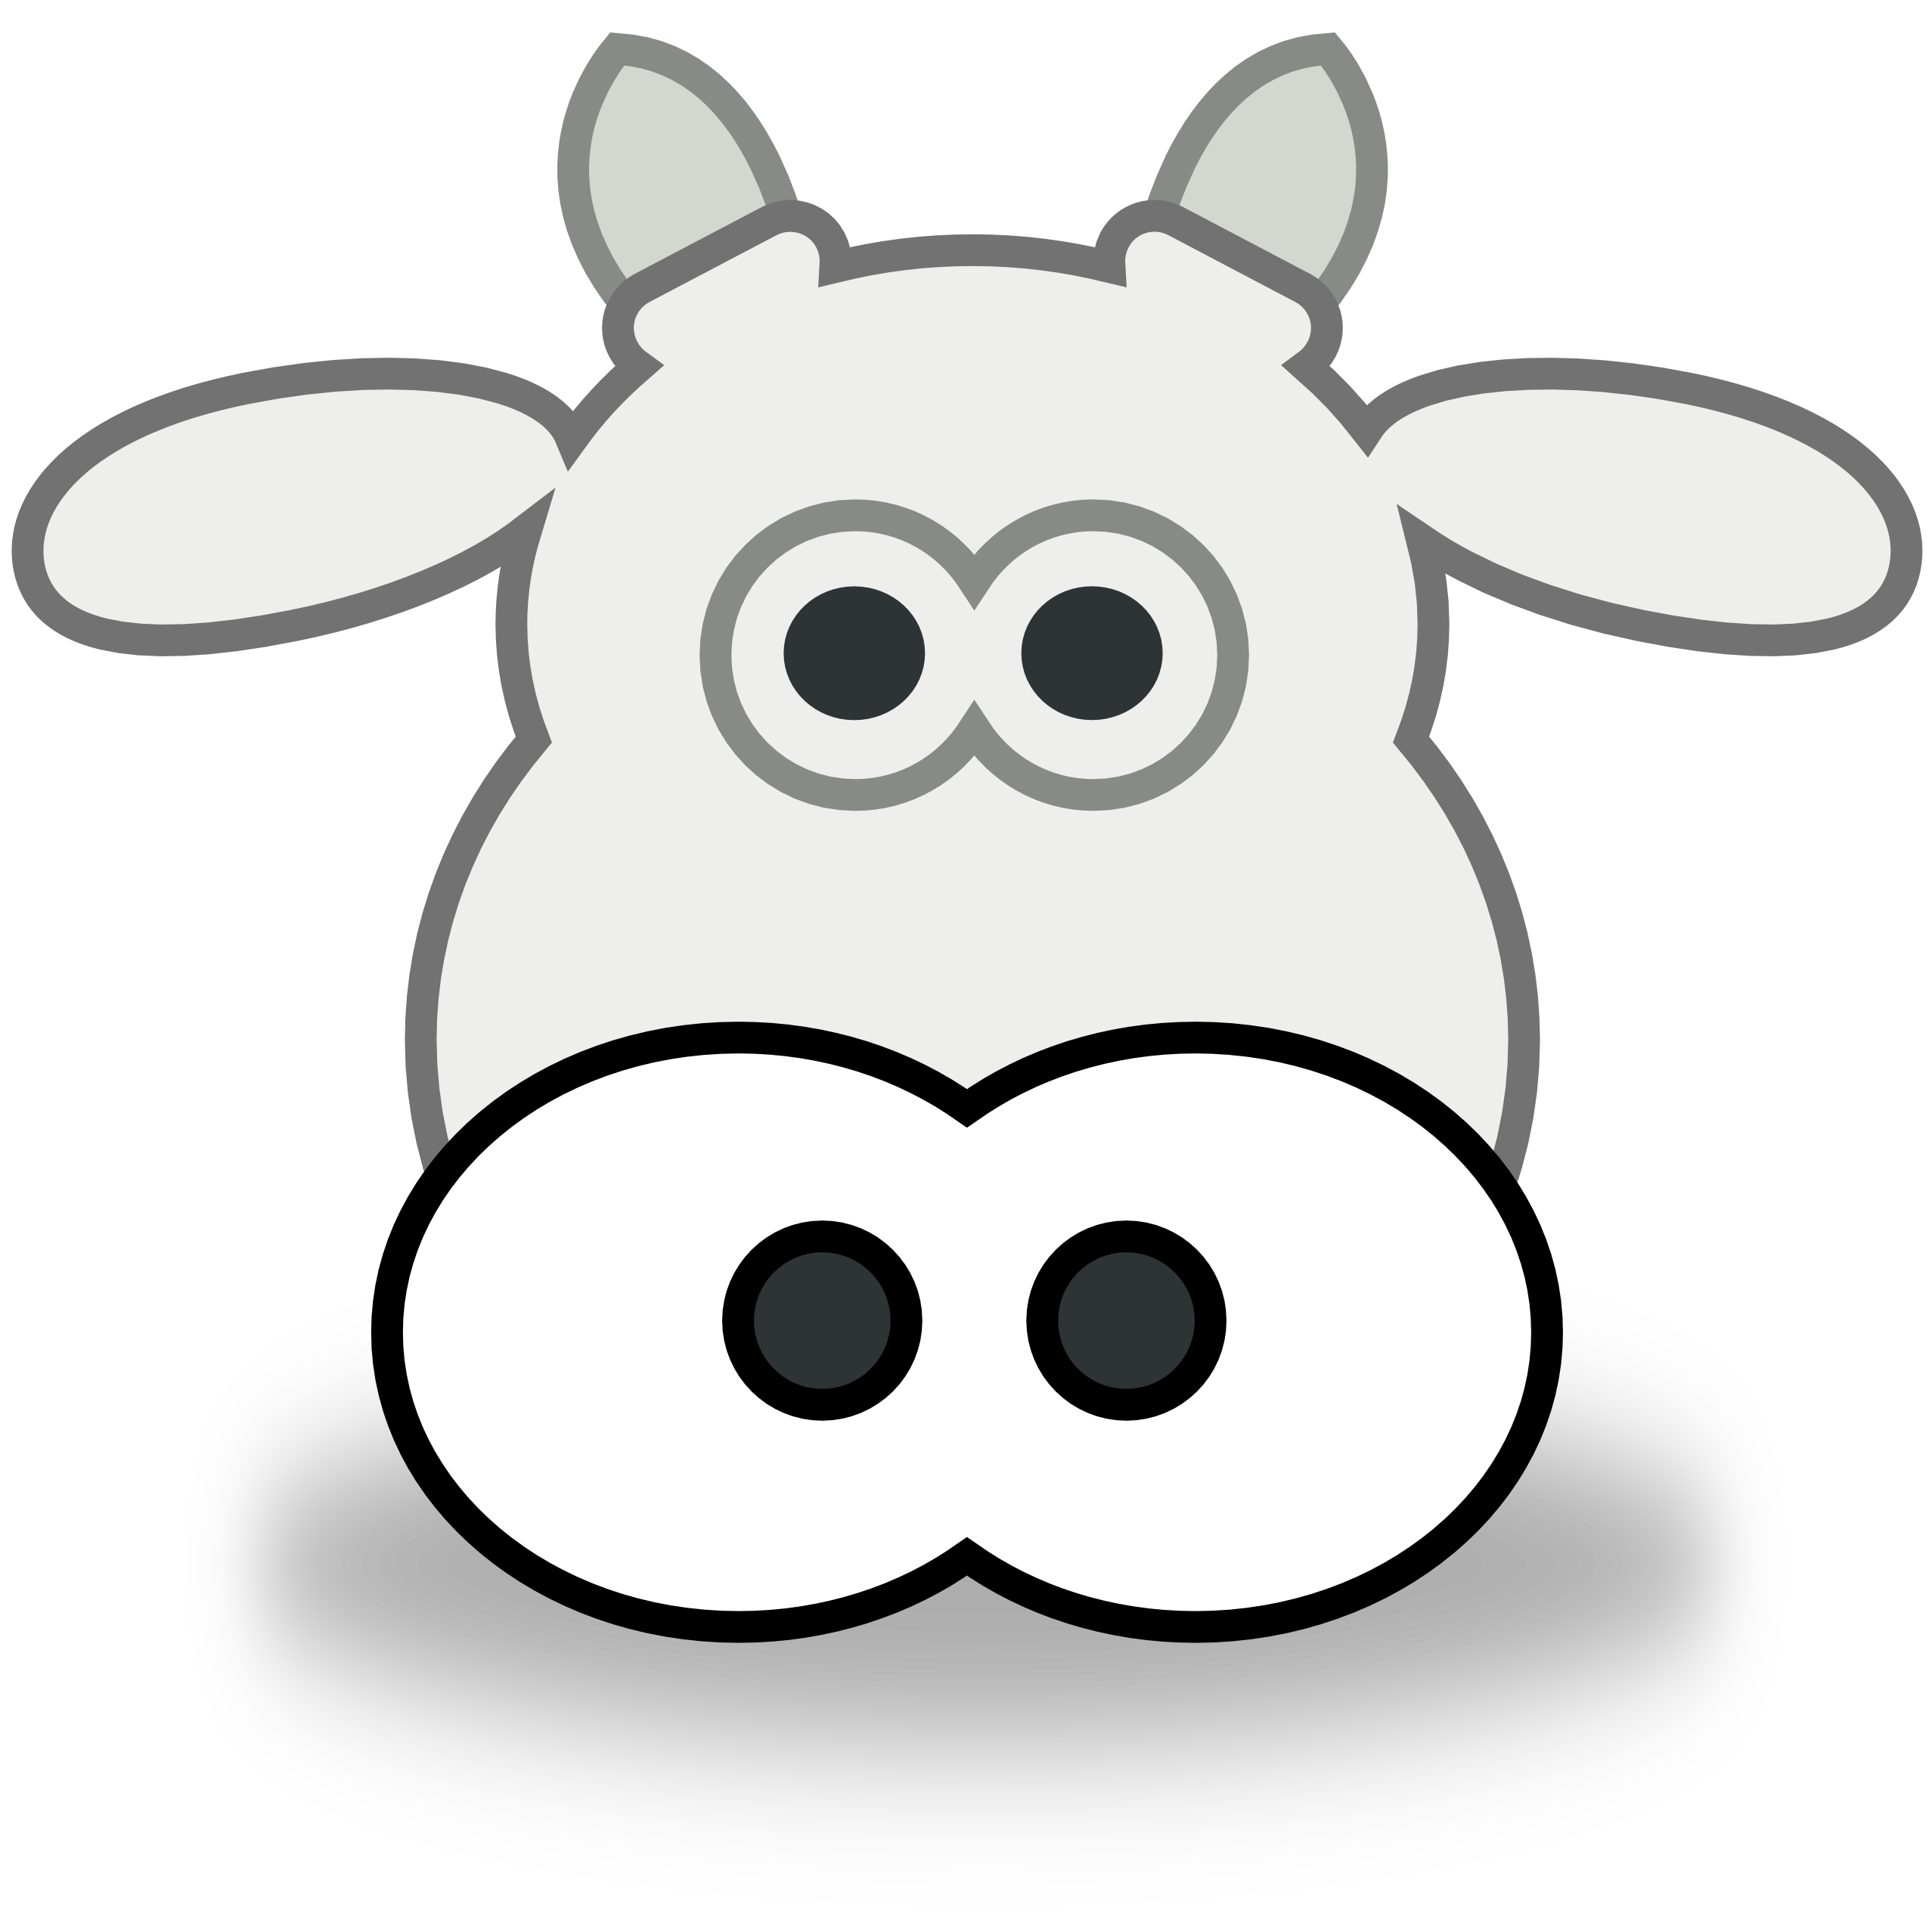 Face panda free images. Clipart cow simple